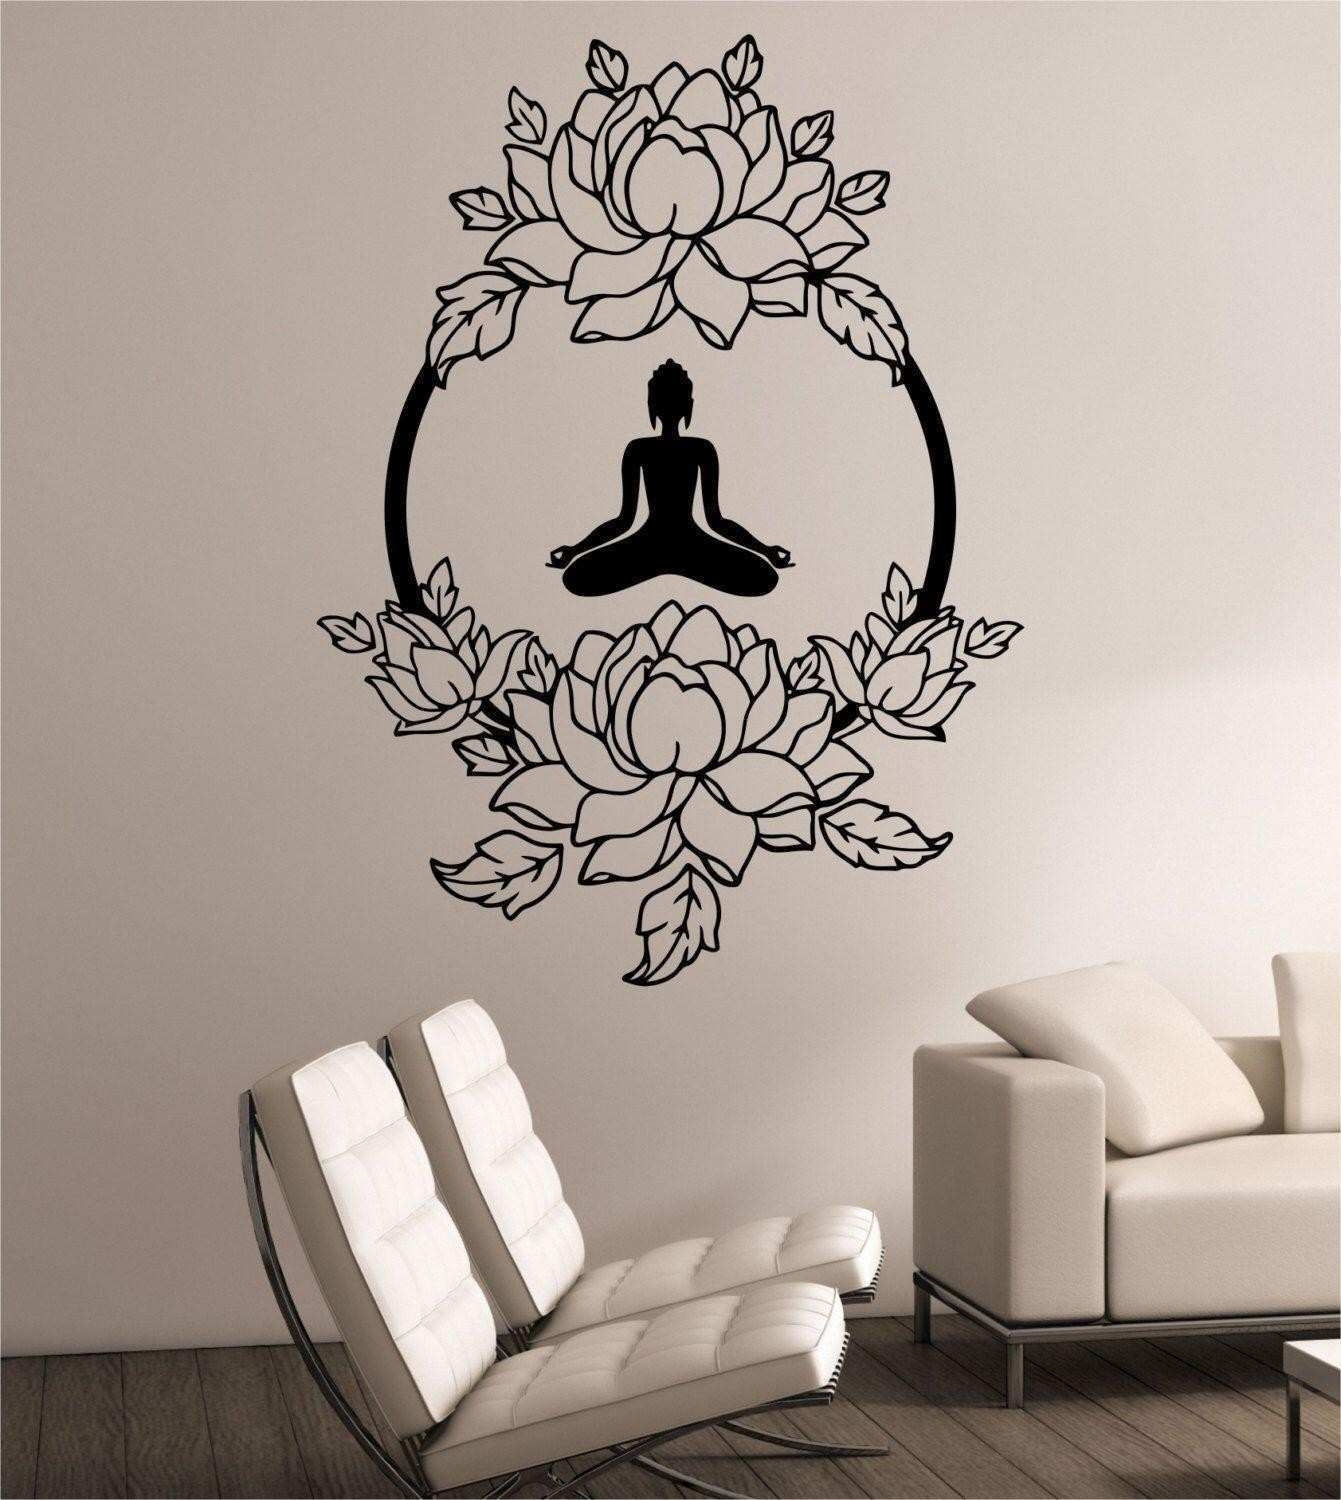 Metal and Wood Wall Decor Fresh Home Decor Bedroom Luxury Wall Decal Luxury 1 Kirkland Wall Decor